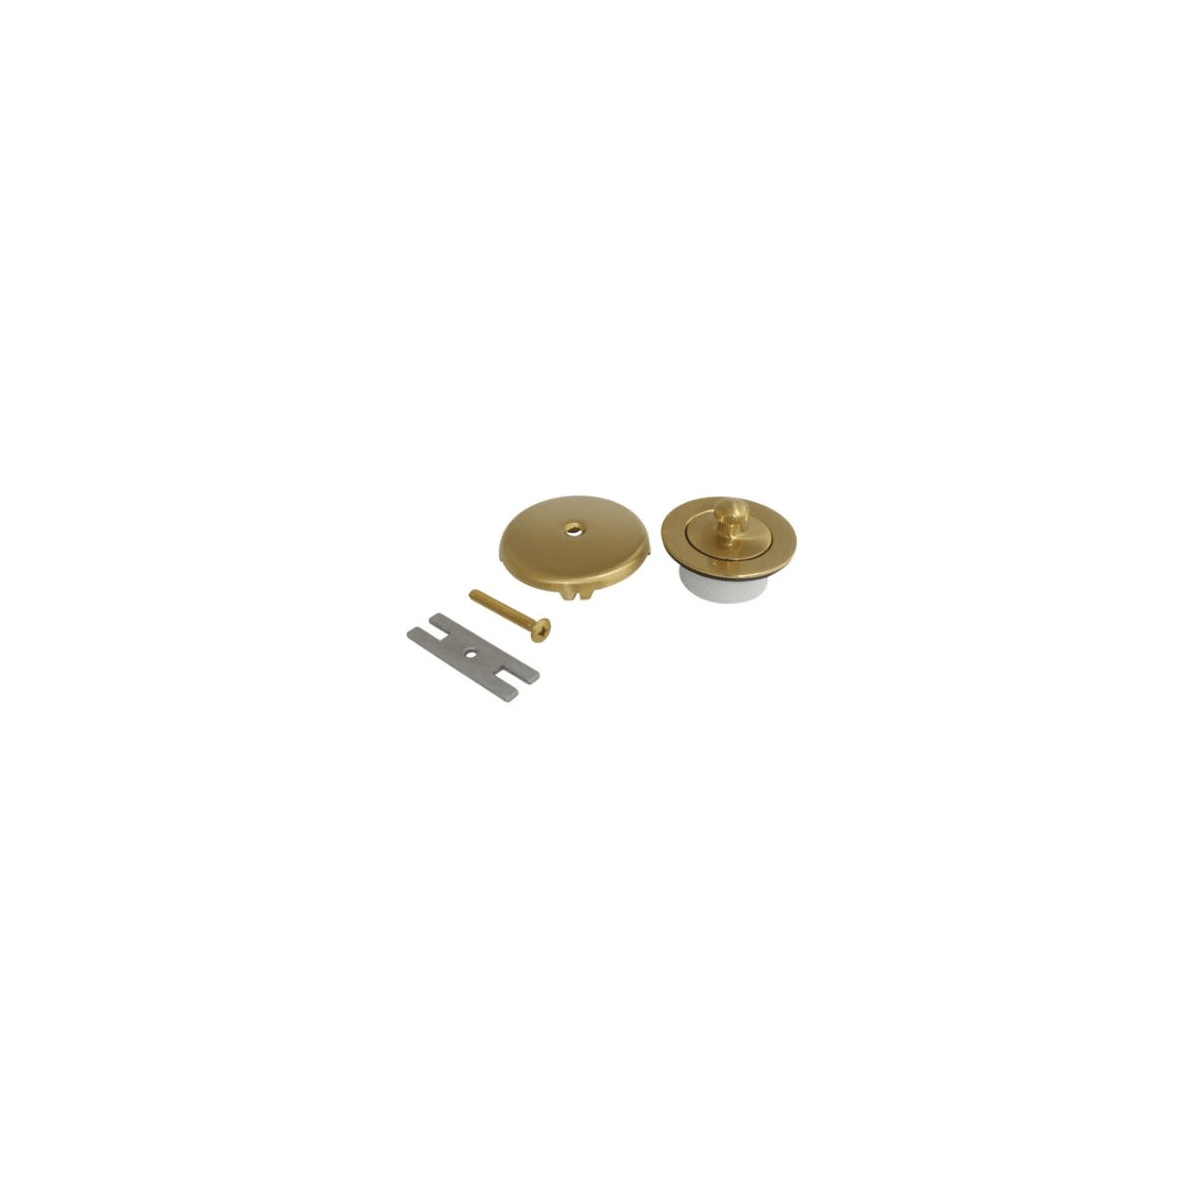 Kingston Brass Made to Match DLT5301A2 Lift and Turn Tub Drain Kit Polished Brass Made to Match